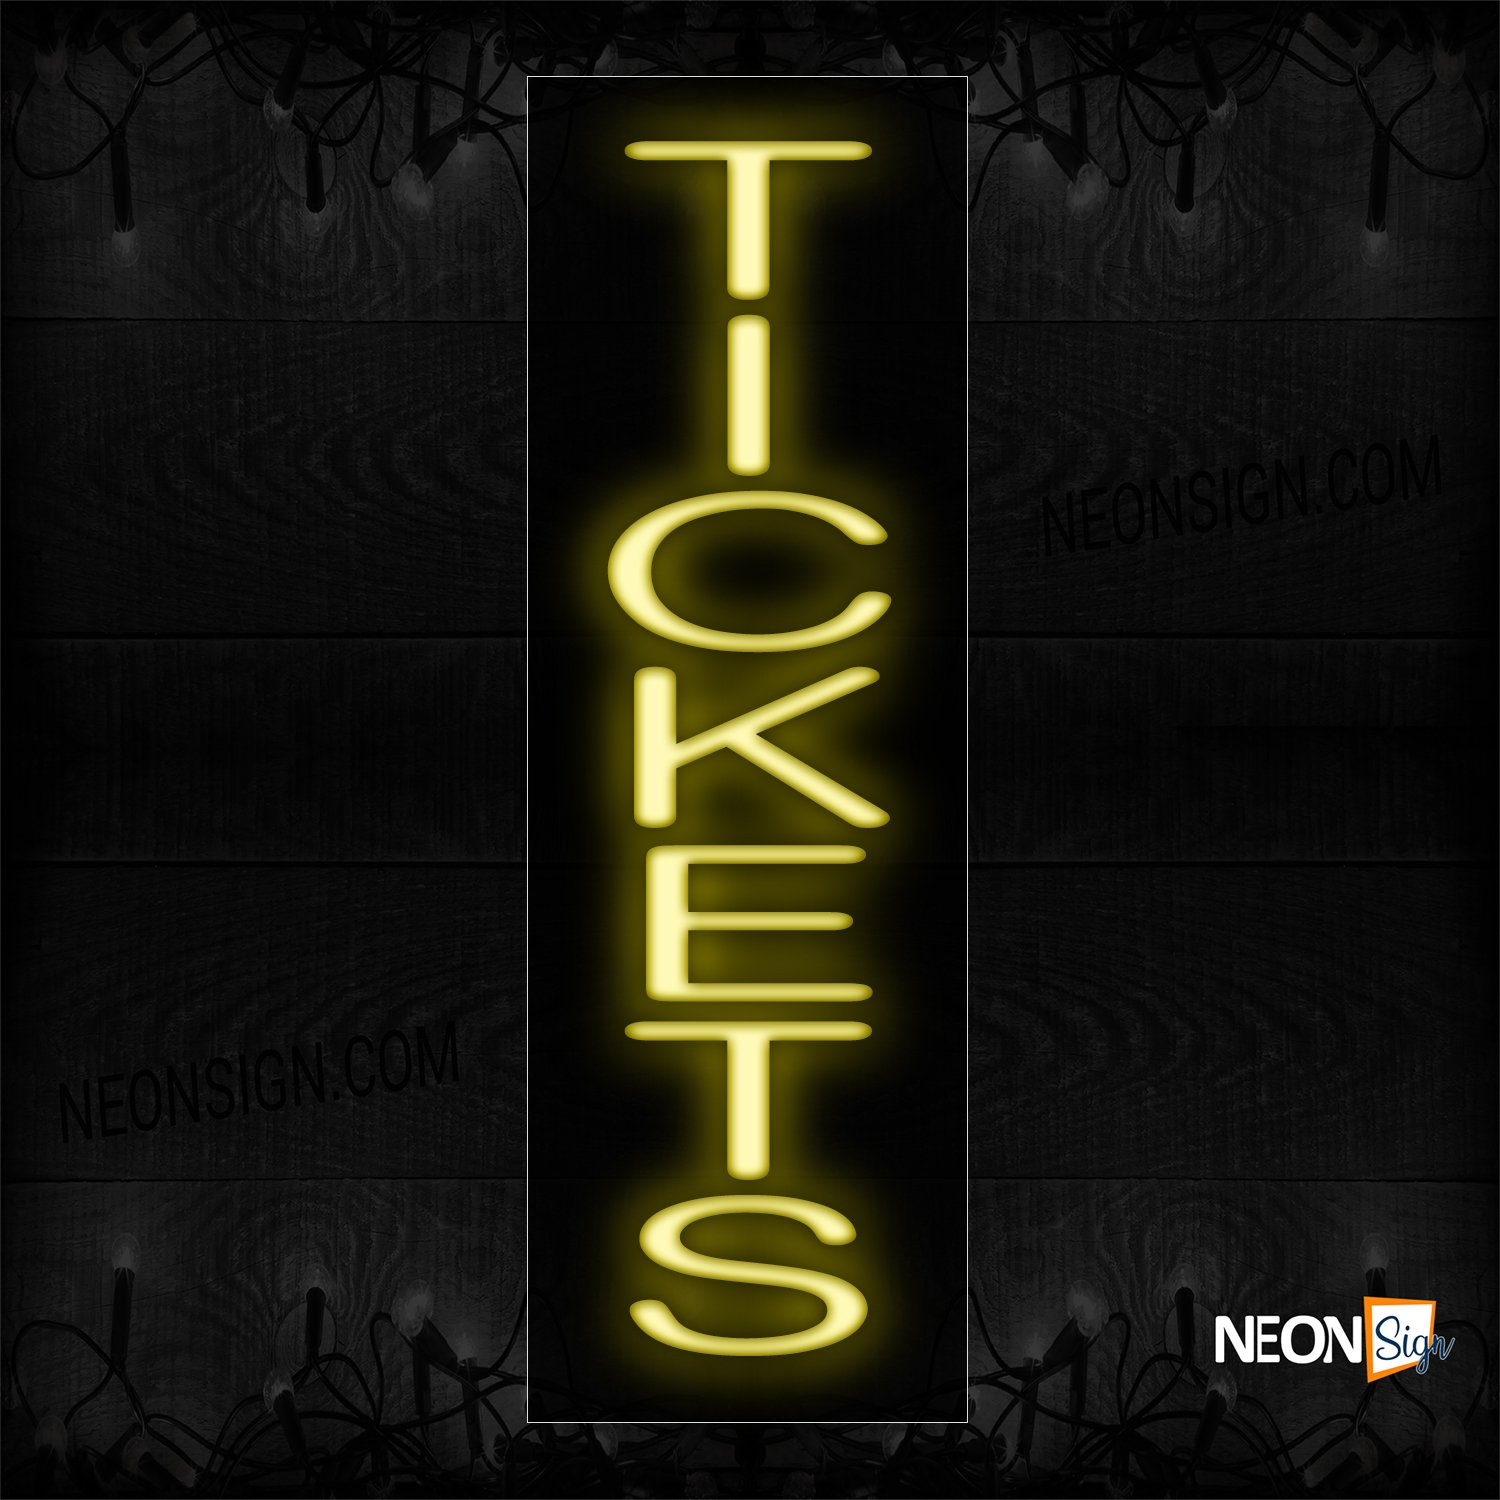 Image of 12309 Tickets Neon Sign_8x24 Black Backing